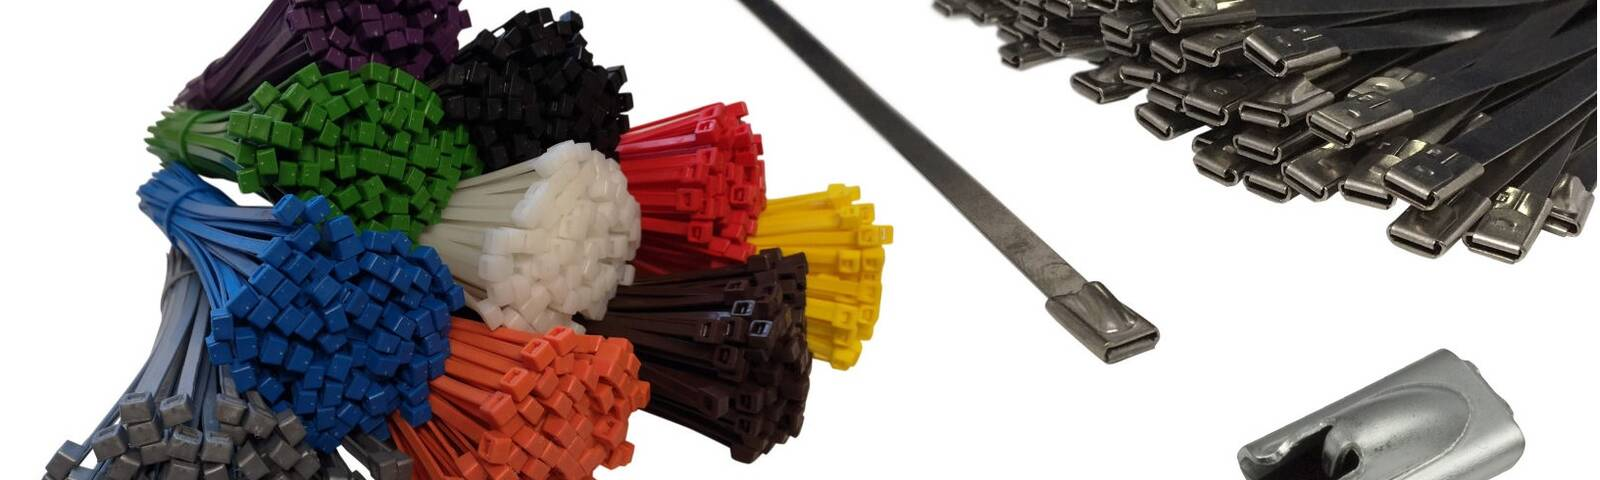 Plastic Vs metal cable ties - which is best?